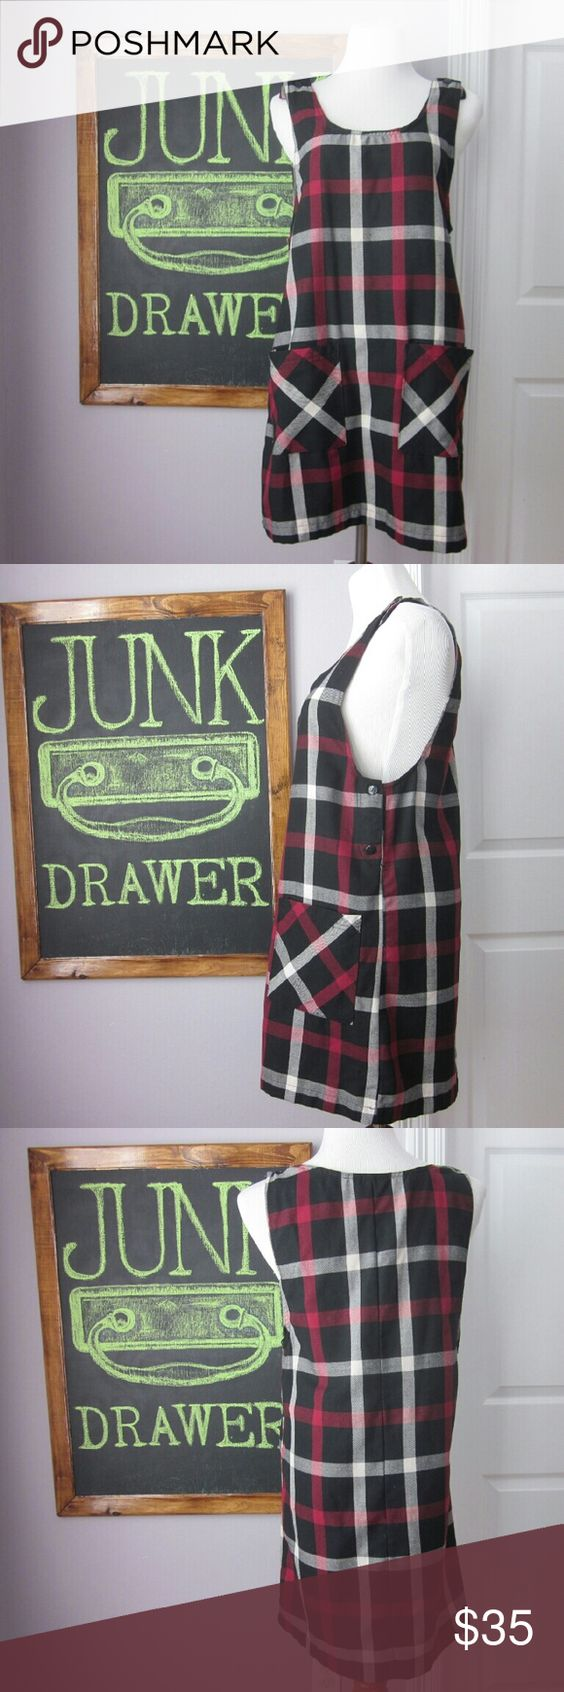 "Vintage Plaid Pinafore Jumper Dress Gently worn - great condition! So cute for fall. 90s schoolgirl look. Missing a button under Lee arm (pic 2 it would be between the 2 You see). You could leave it... Would never notice OR use one of the extra buttons in straps to replace. Straps have 2 buttons each to choose length best for you. 65% poly 35% rayon. Pennylane brand. Bust 19"". Length 33.5""  Bundle for best deals! Hundreds of items available for discounted bundles!   Instagram…"